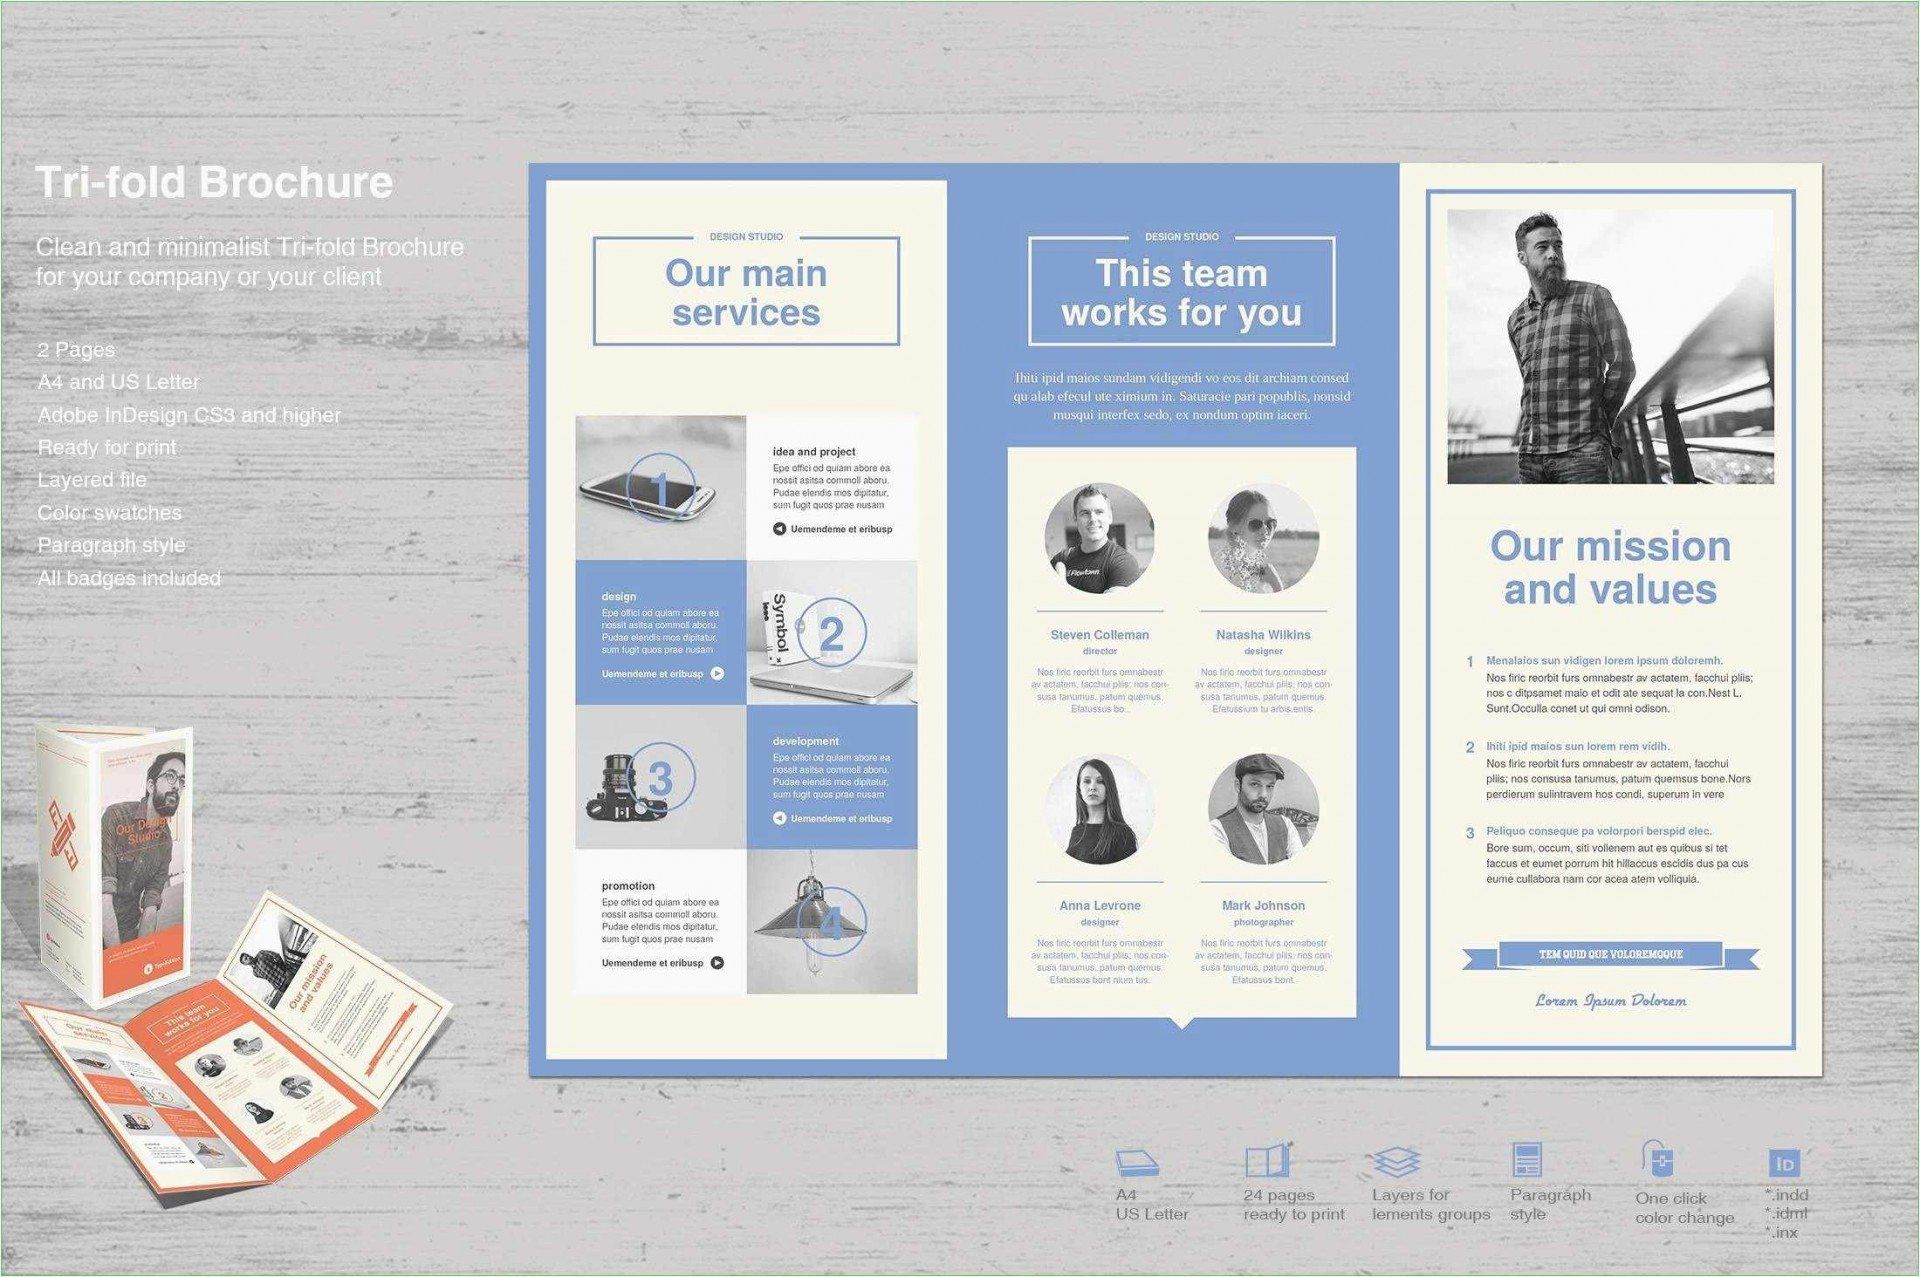 Word Trifold Brochure Template Lovely 005 Free Event Trifold Brochure Template Ideas Tri Fold Brochure Design Template Booklet Template Free Brochure Template Word tri fold brochure template